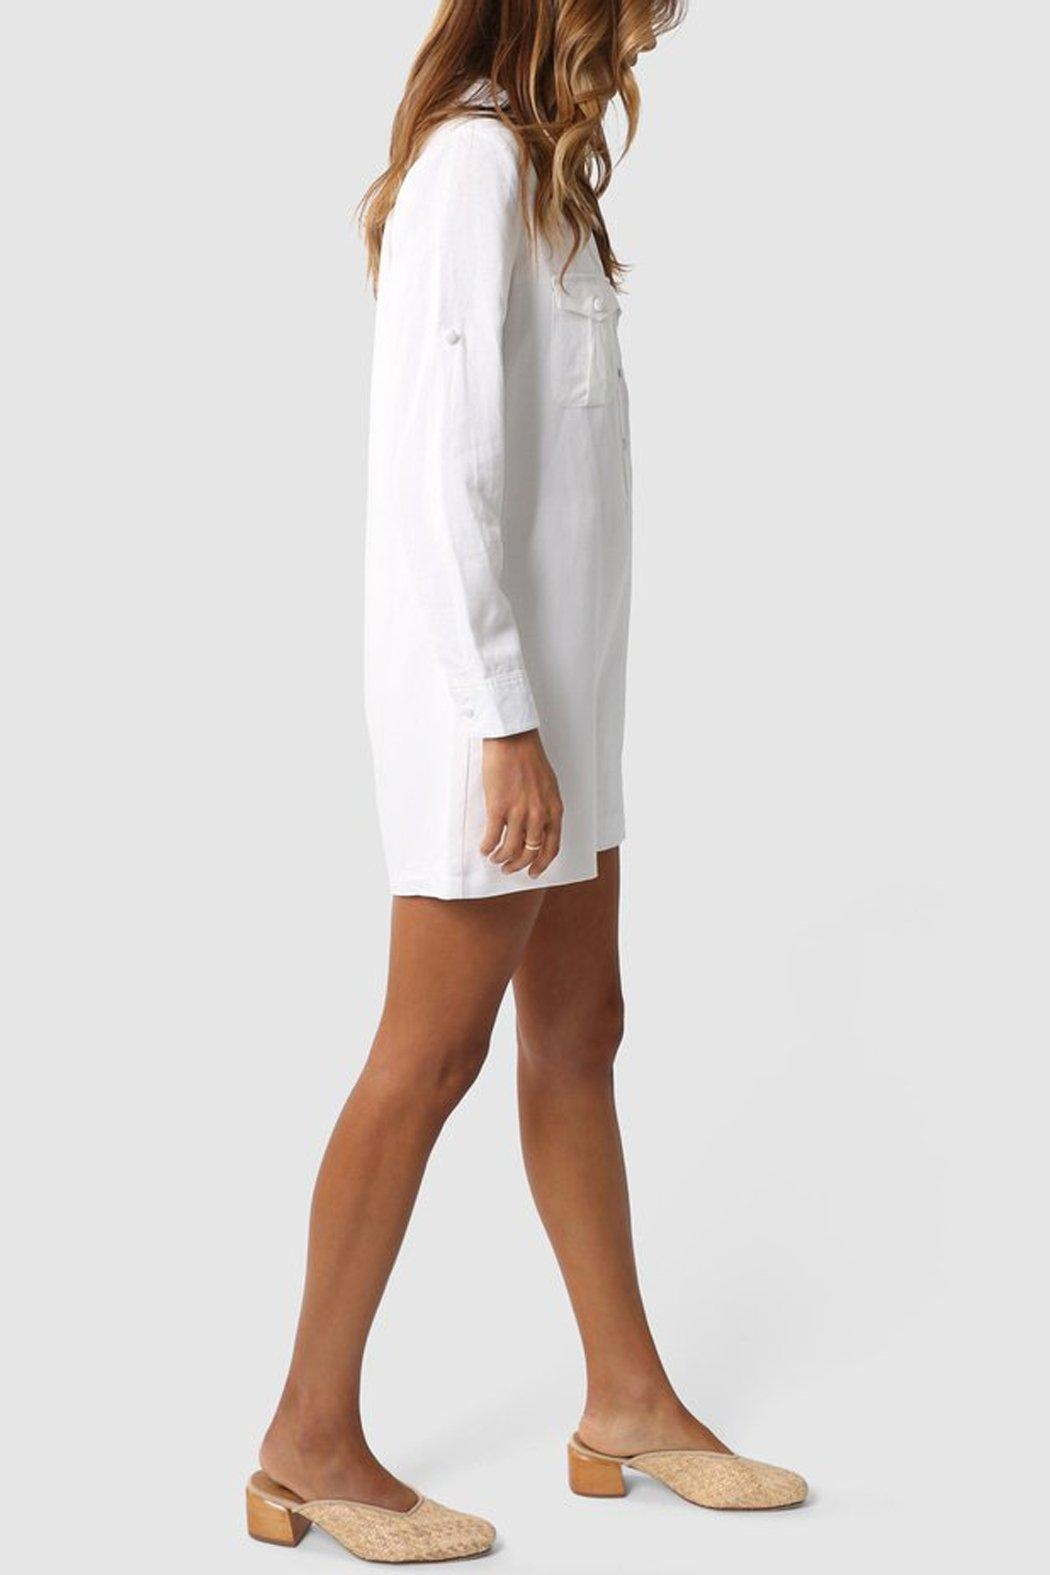 Madison the Label Kenzie Playsuit - Side Cropped Image